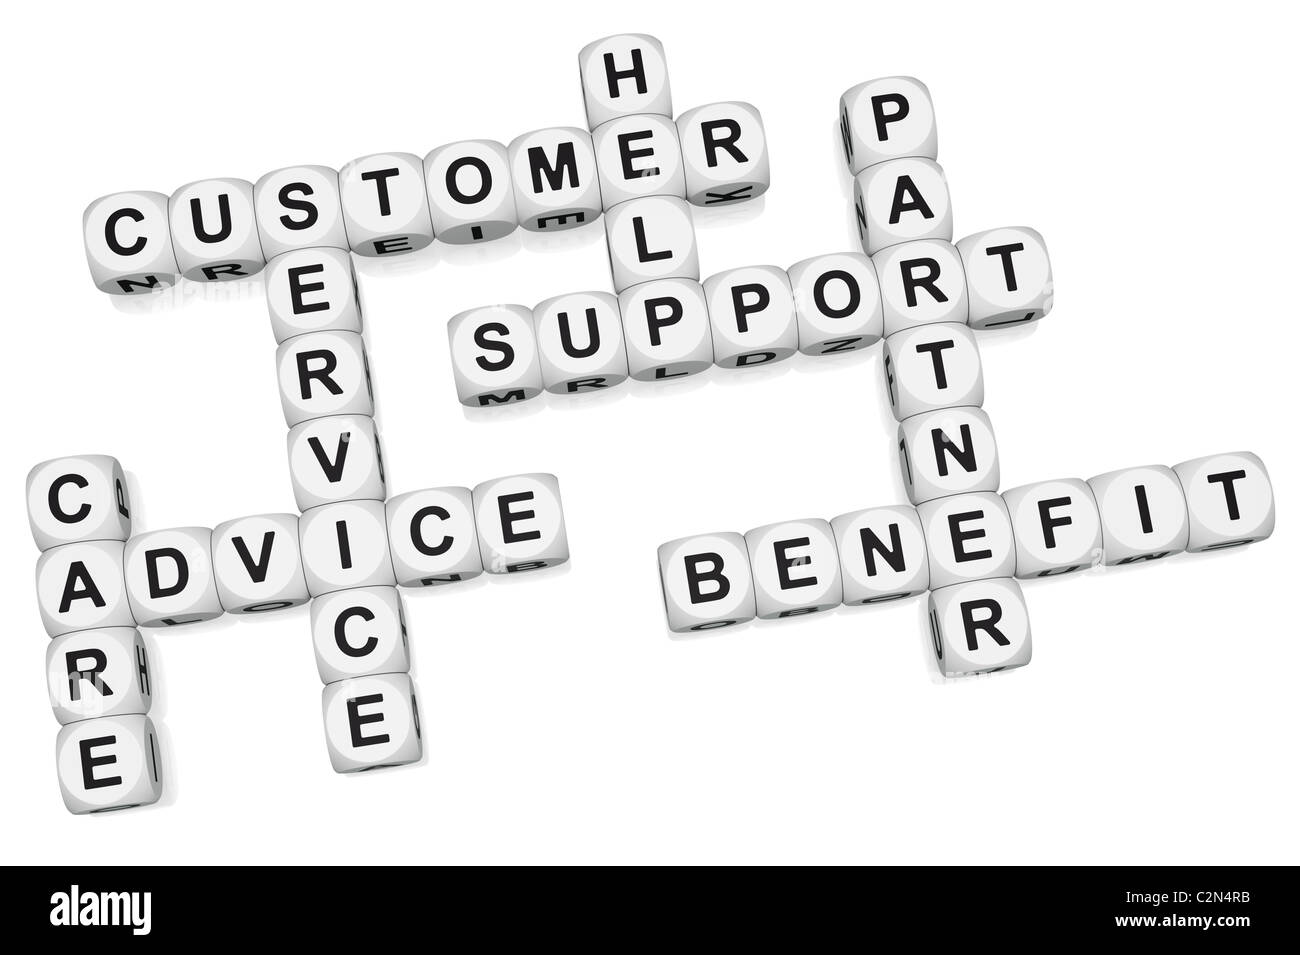 Customer benefit of quality service crossword on white background - Stock Image